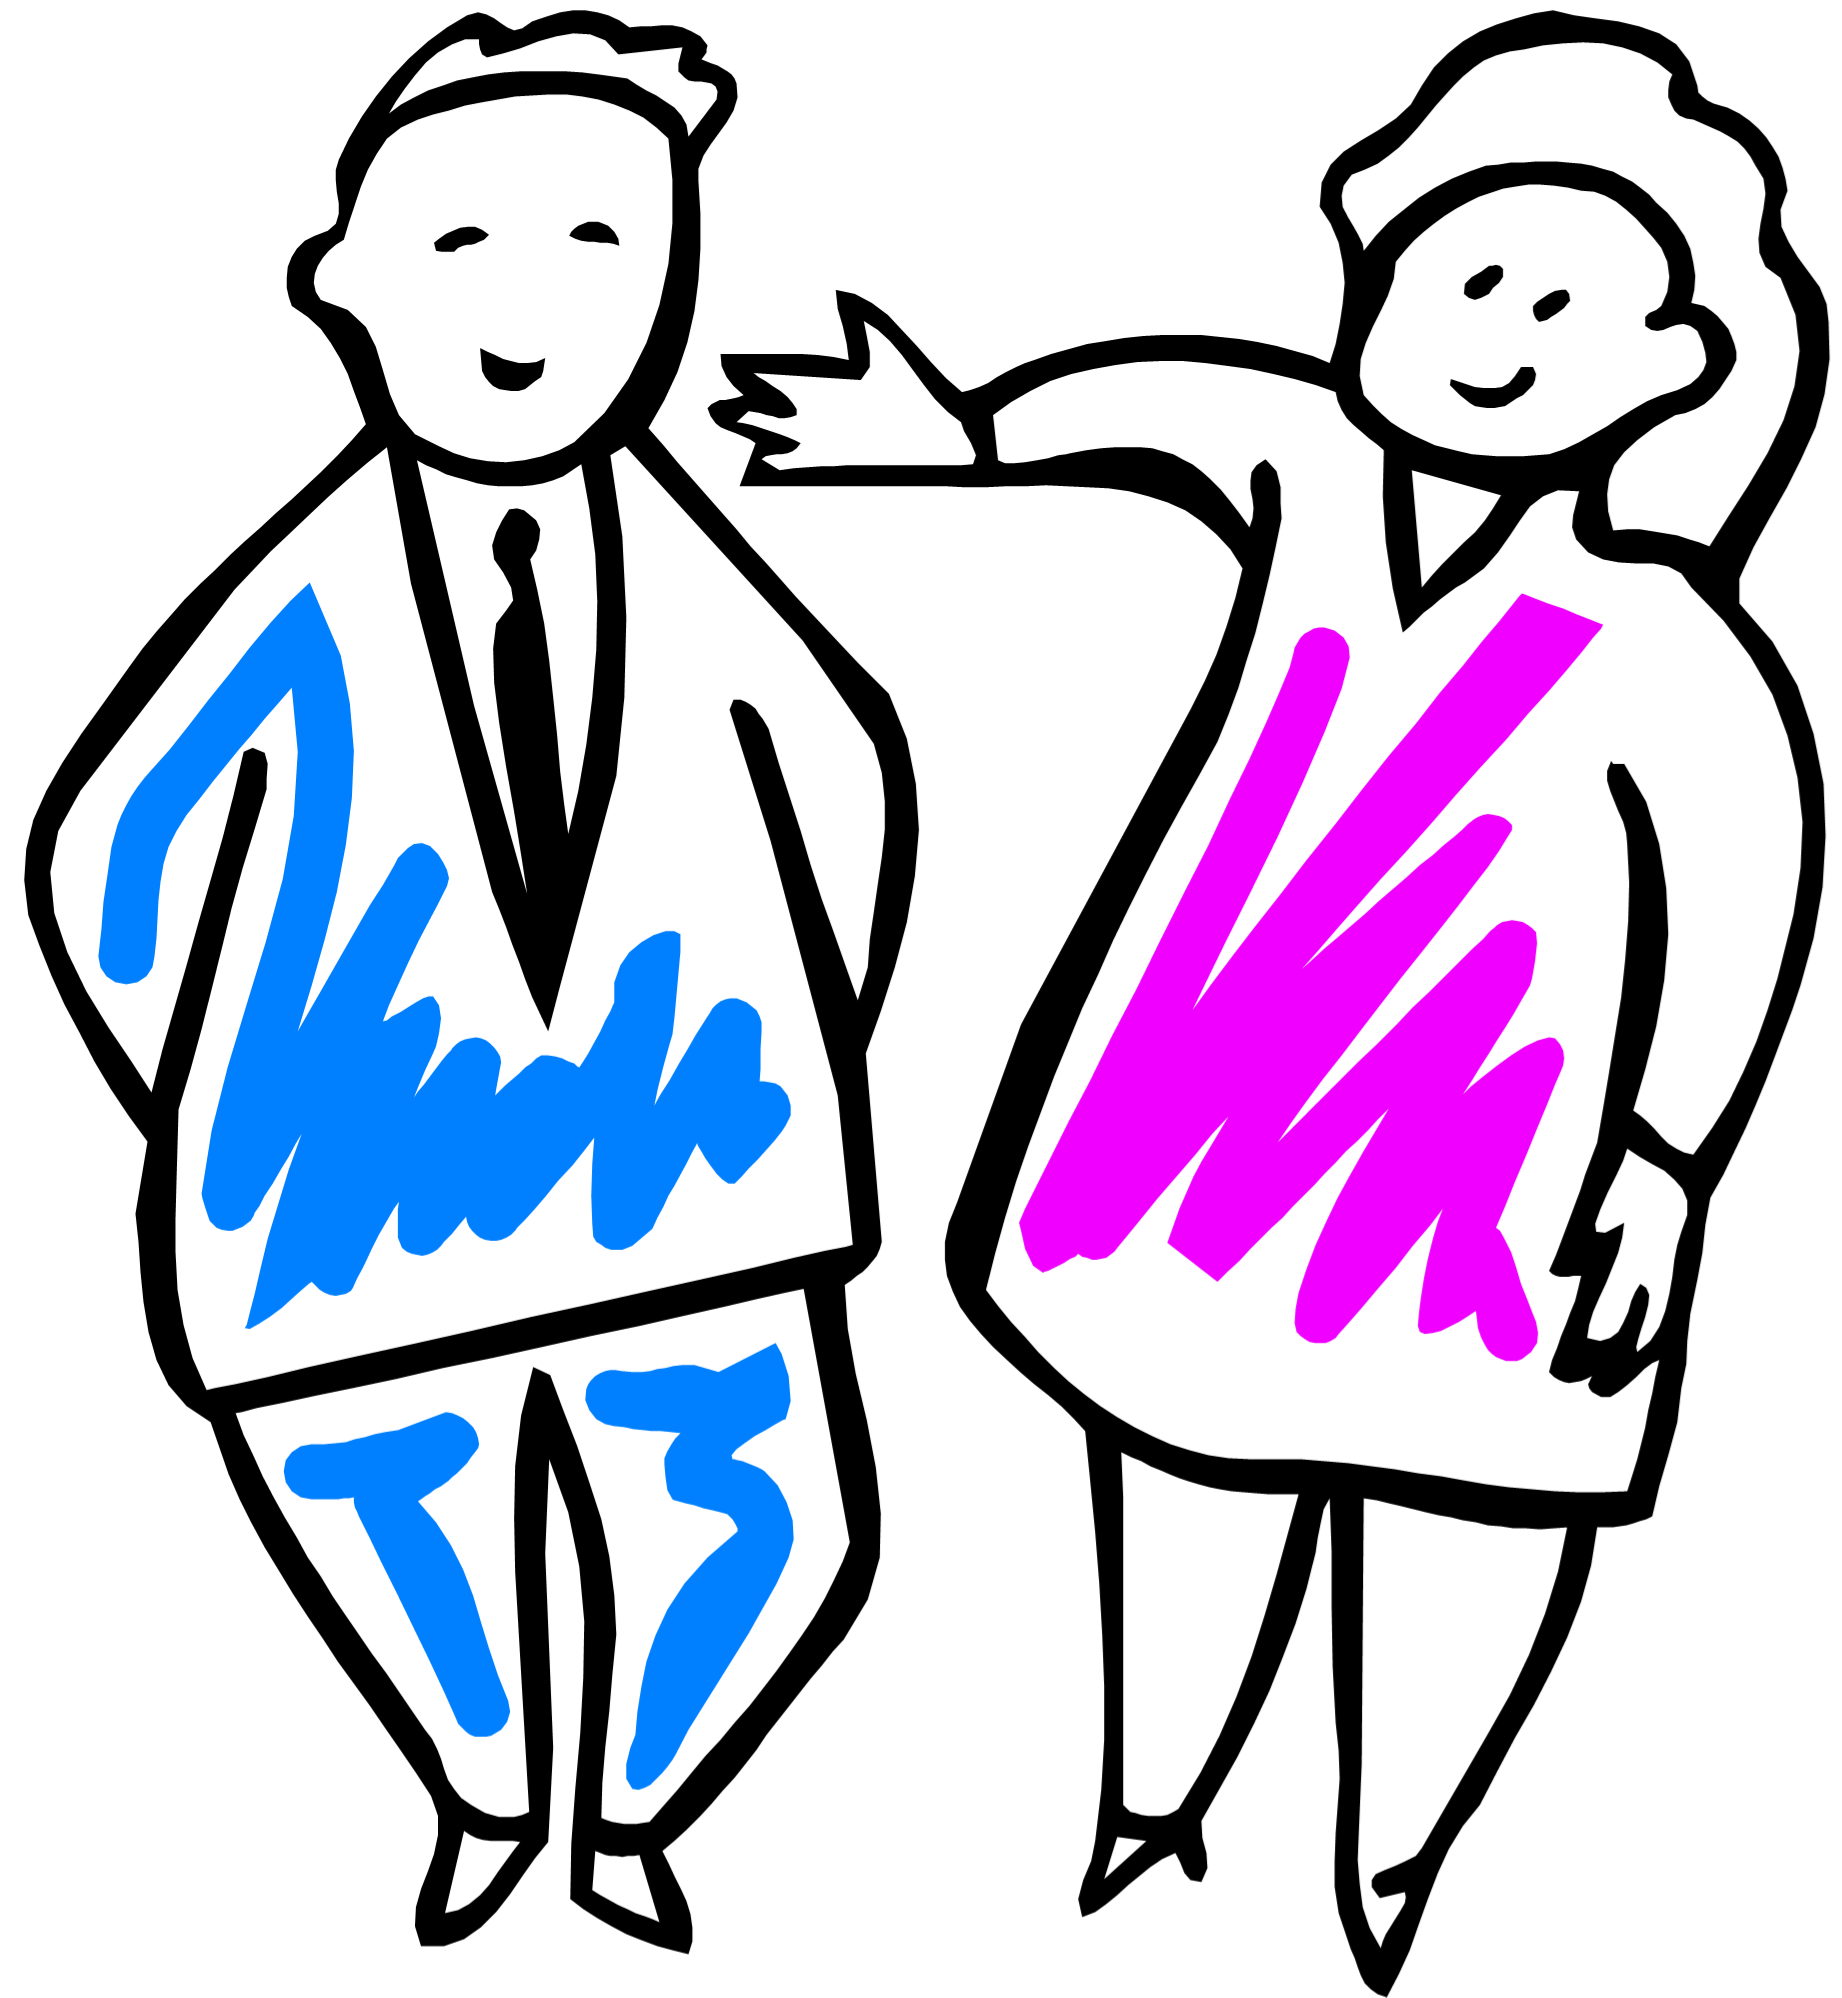 Thoughts clipart misconception. Misconceptions and stereotypes of